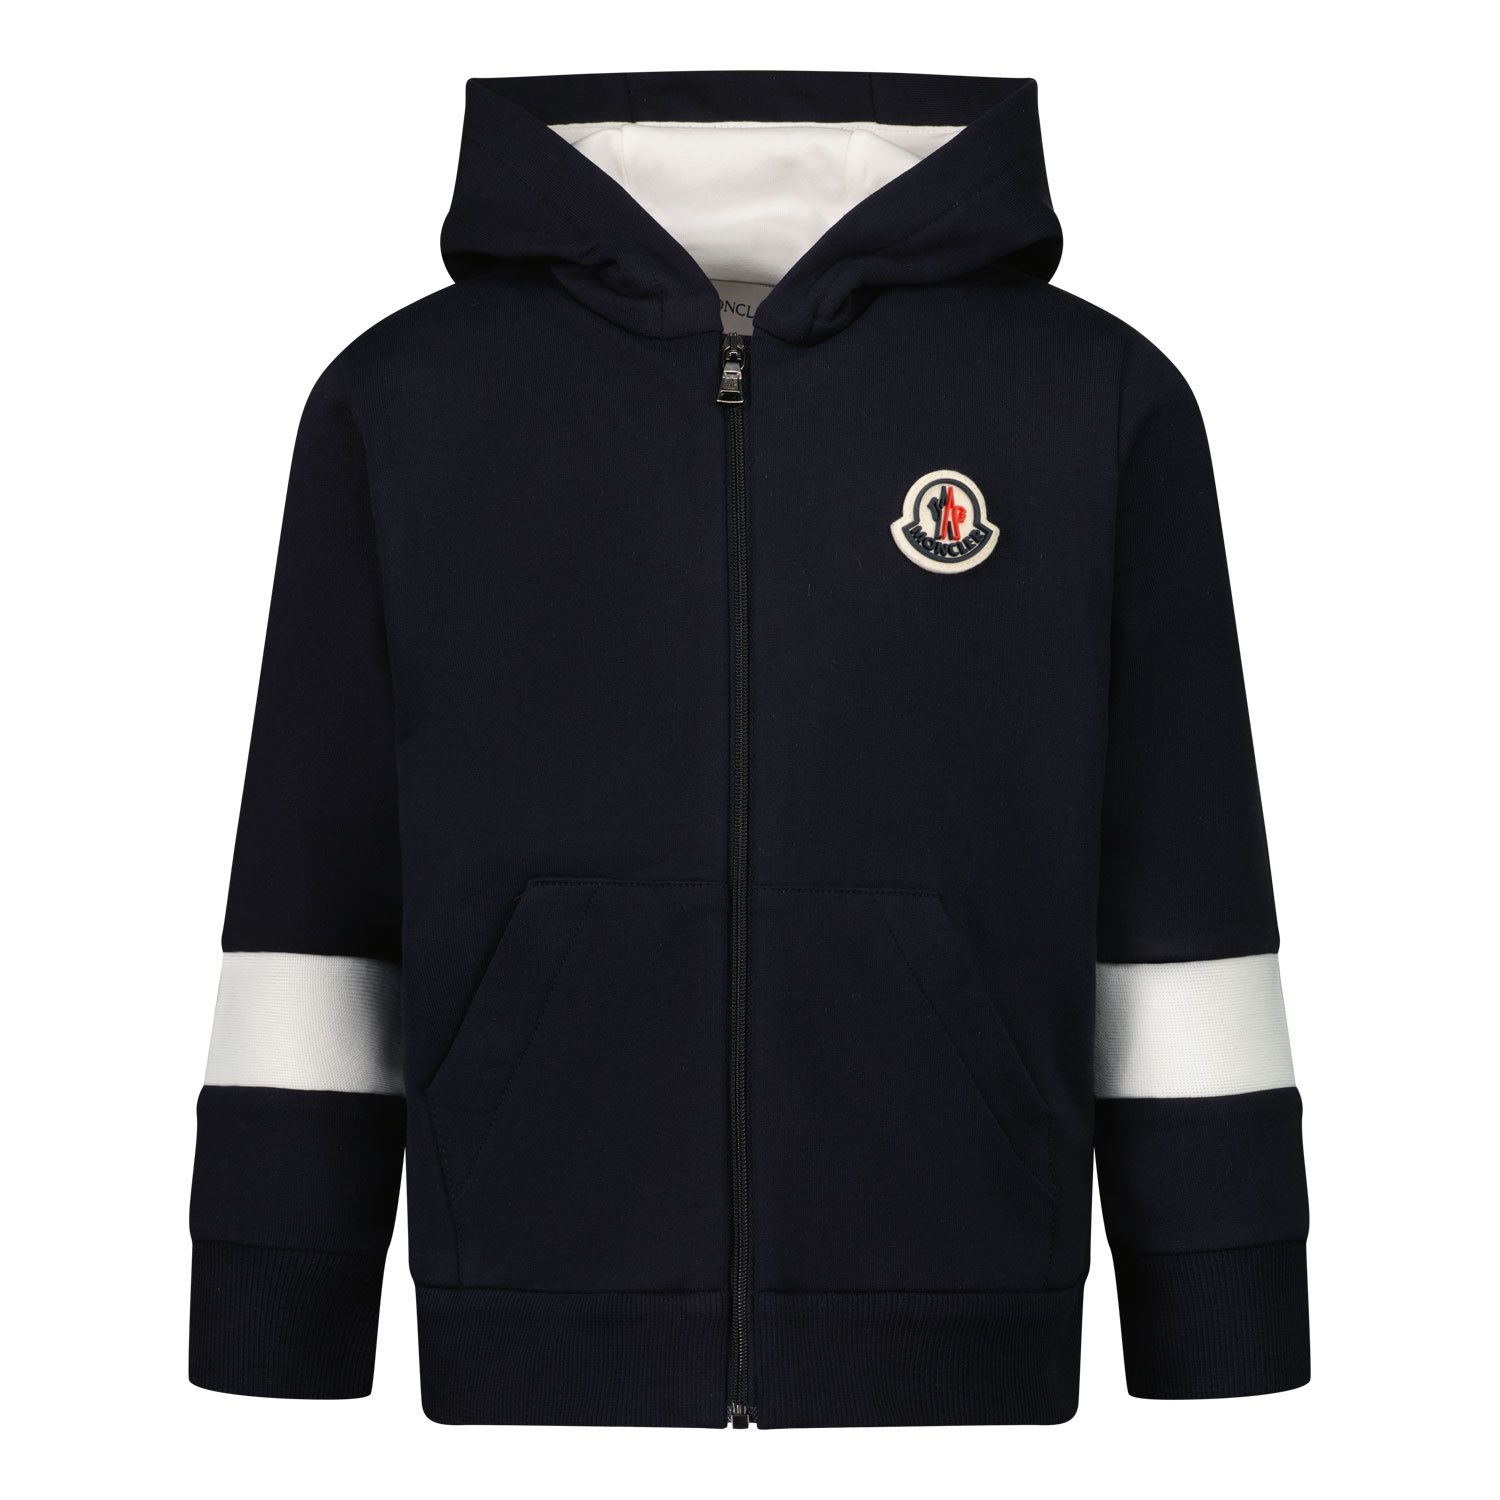 Picture of Moncler 8G71720 baby vest navy